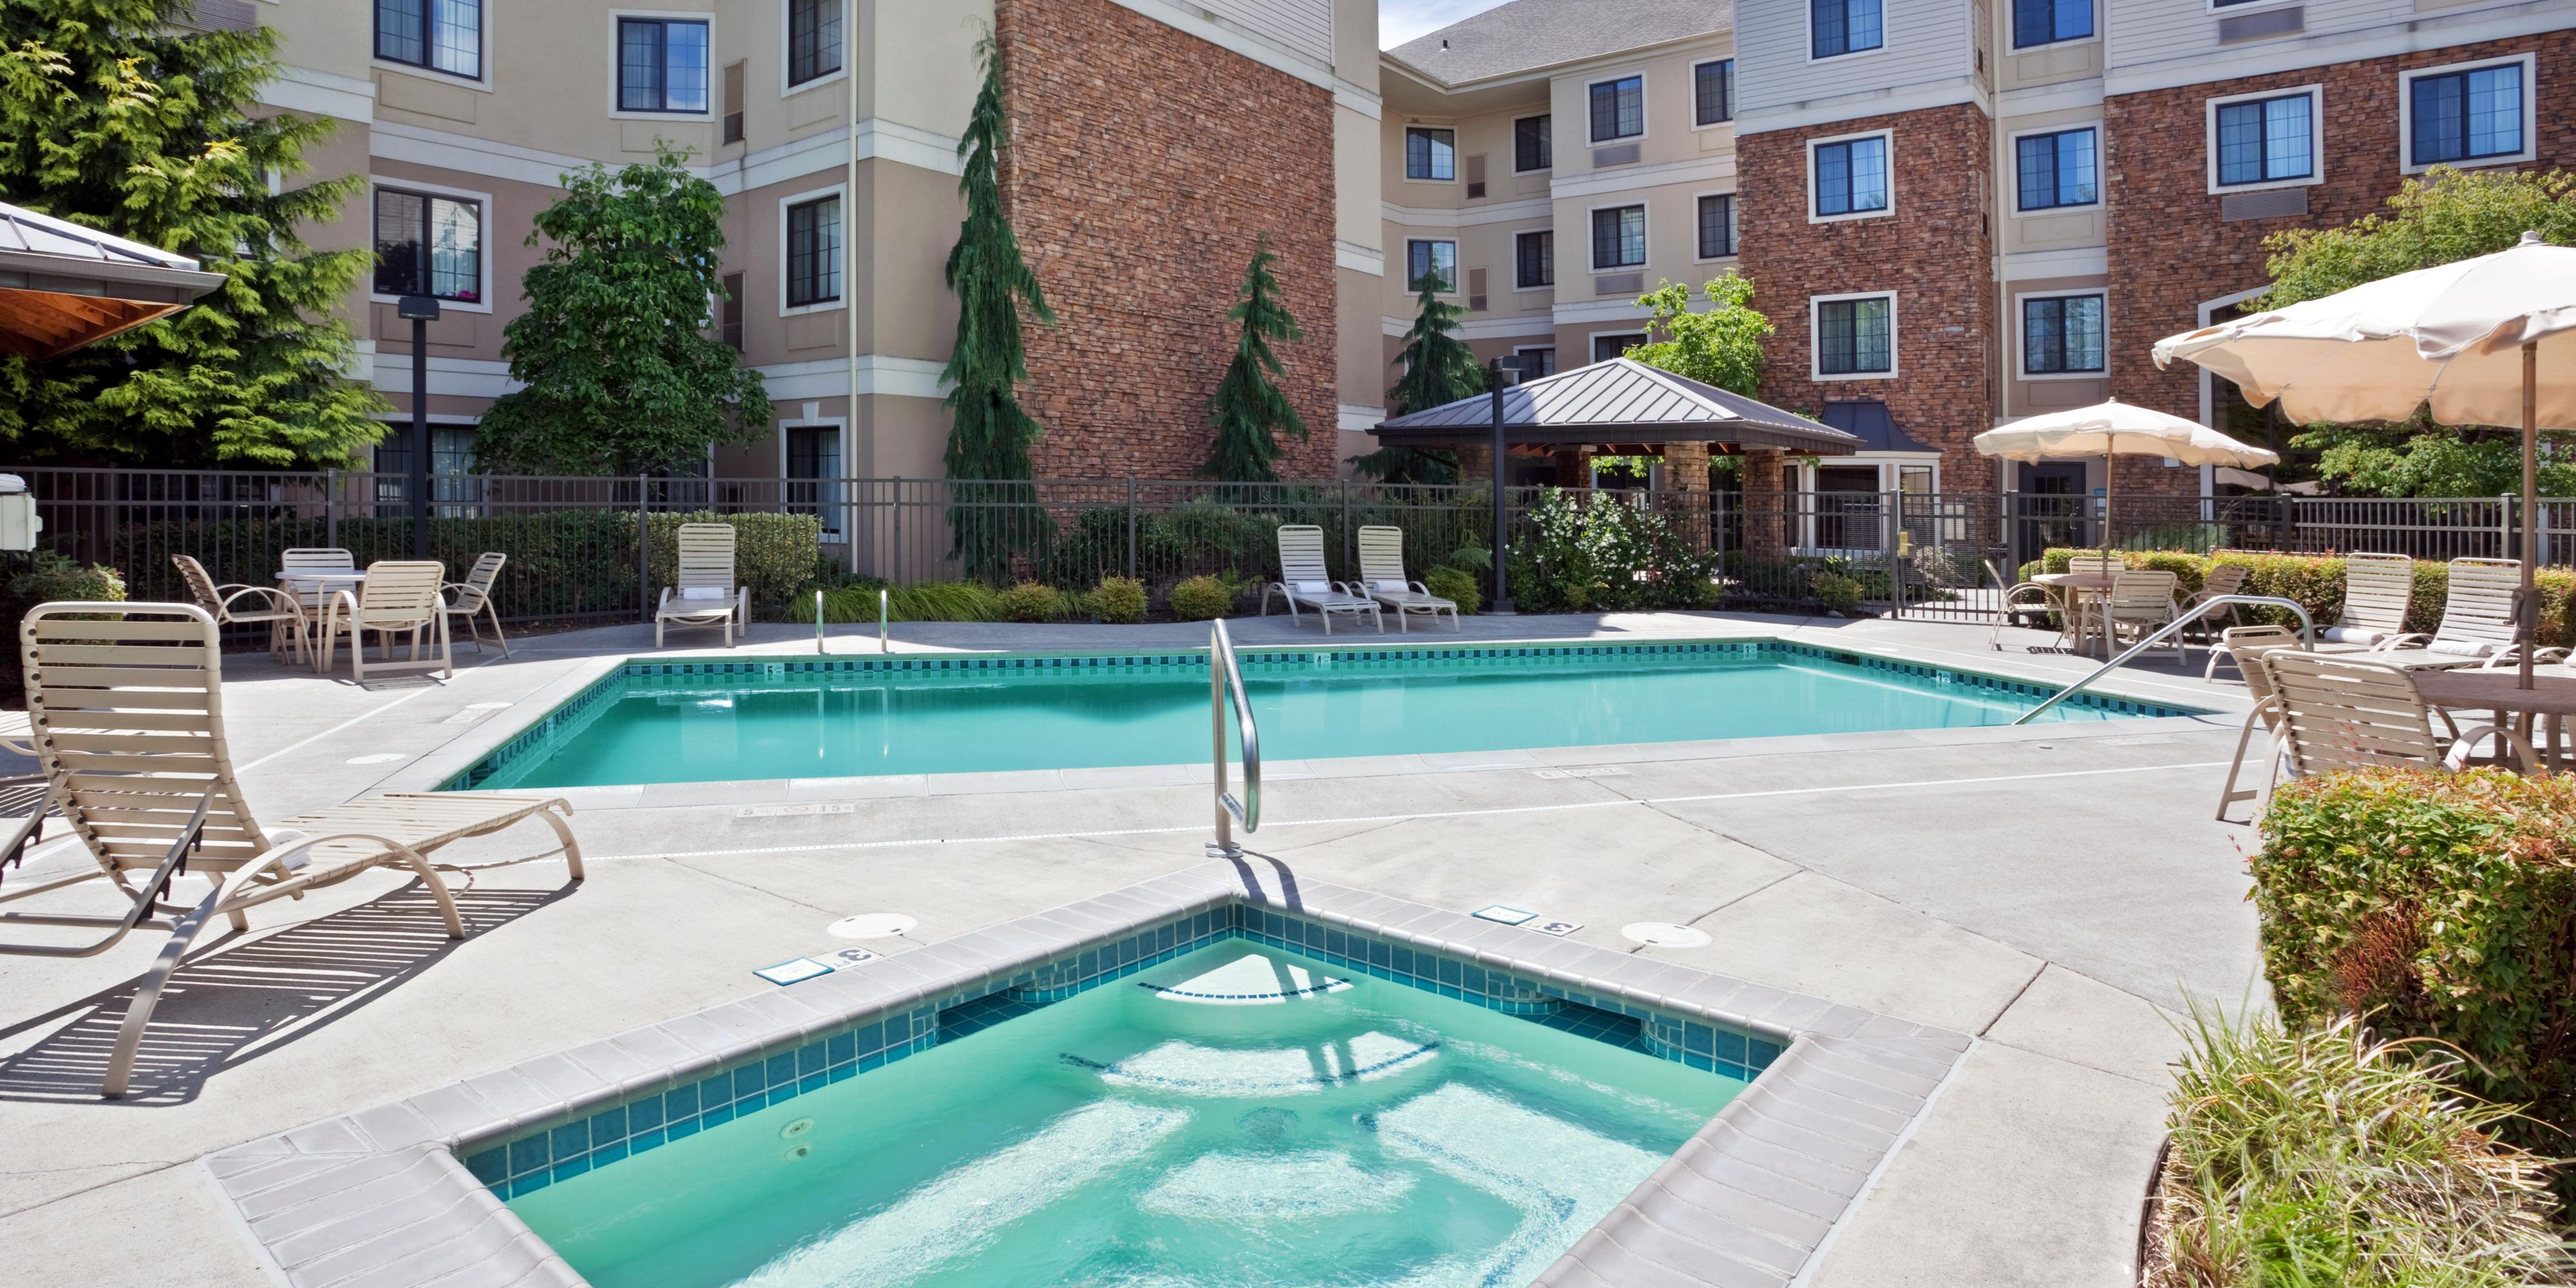 Vancouver Wa Motels And Hotels